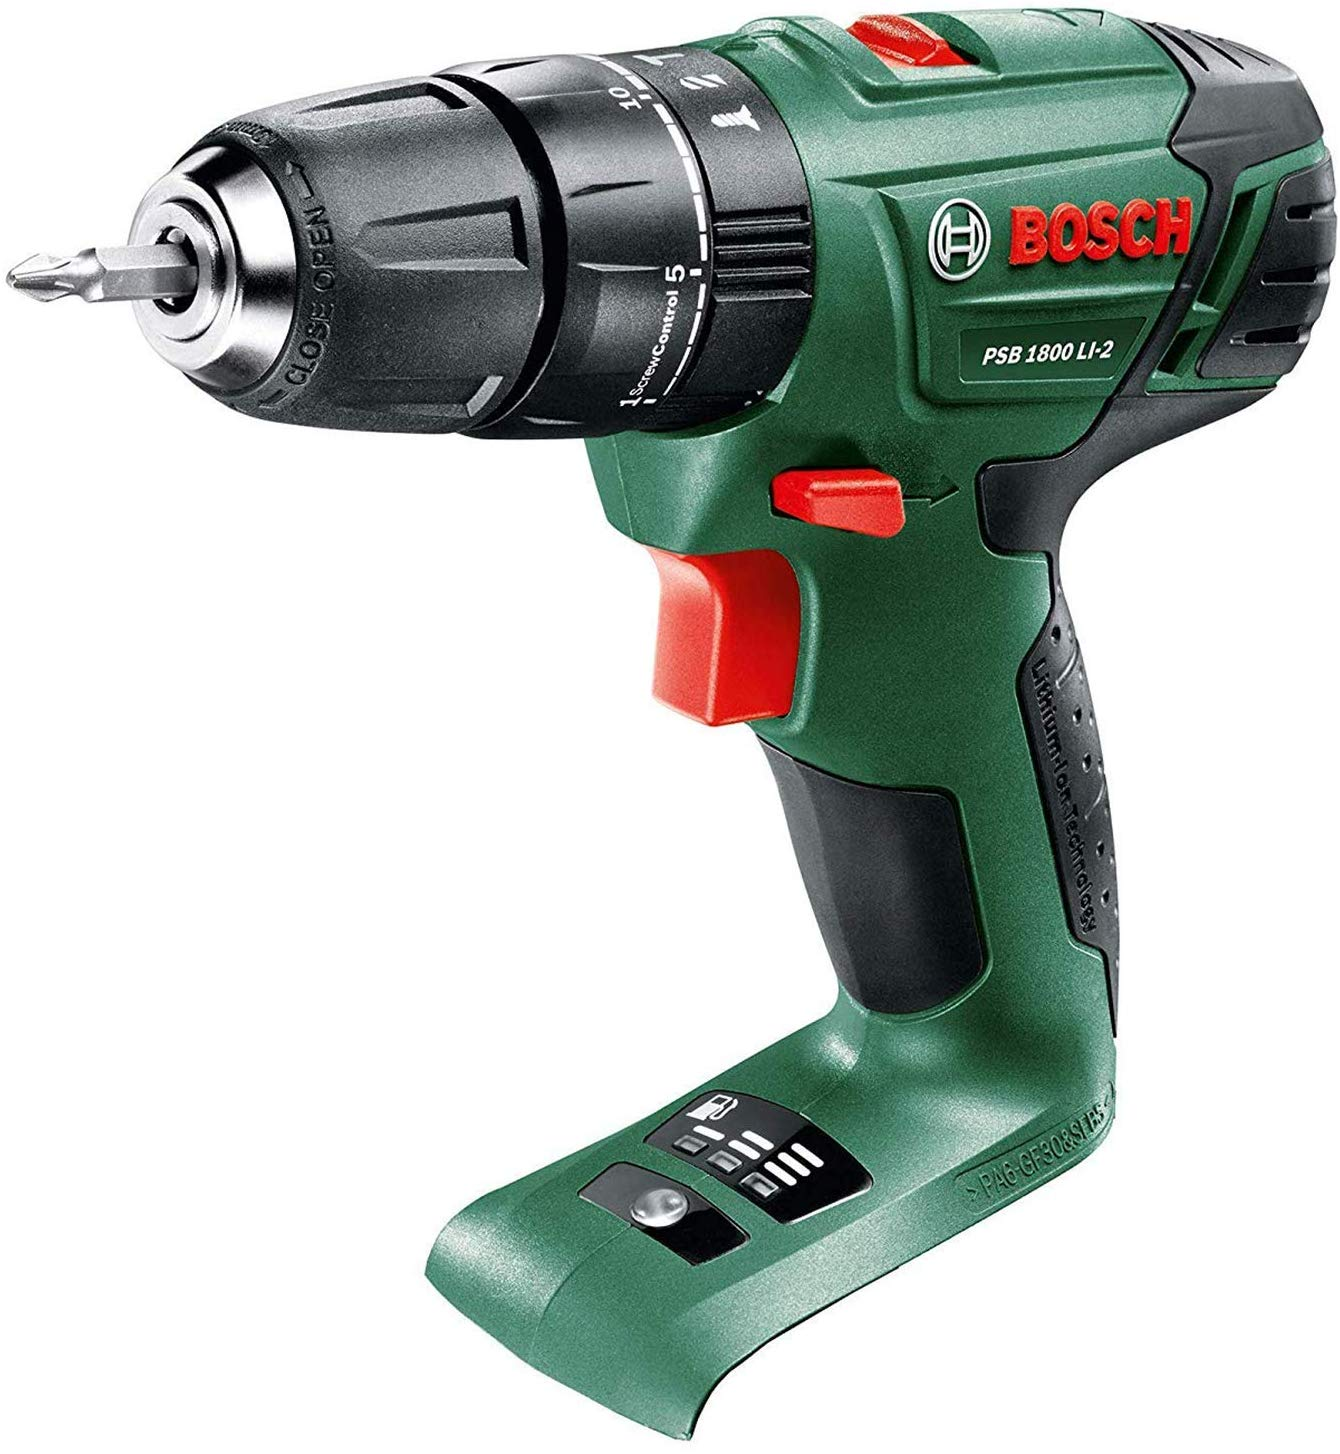 Bosch - Cordless Drill PSB 1800 LI-2 (Battery not included)